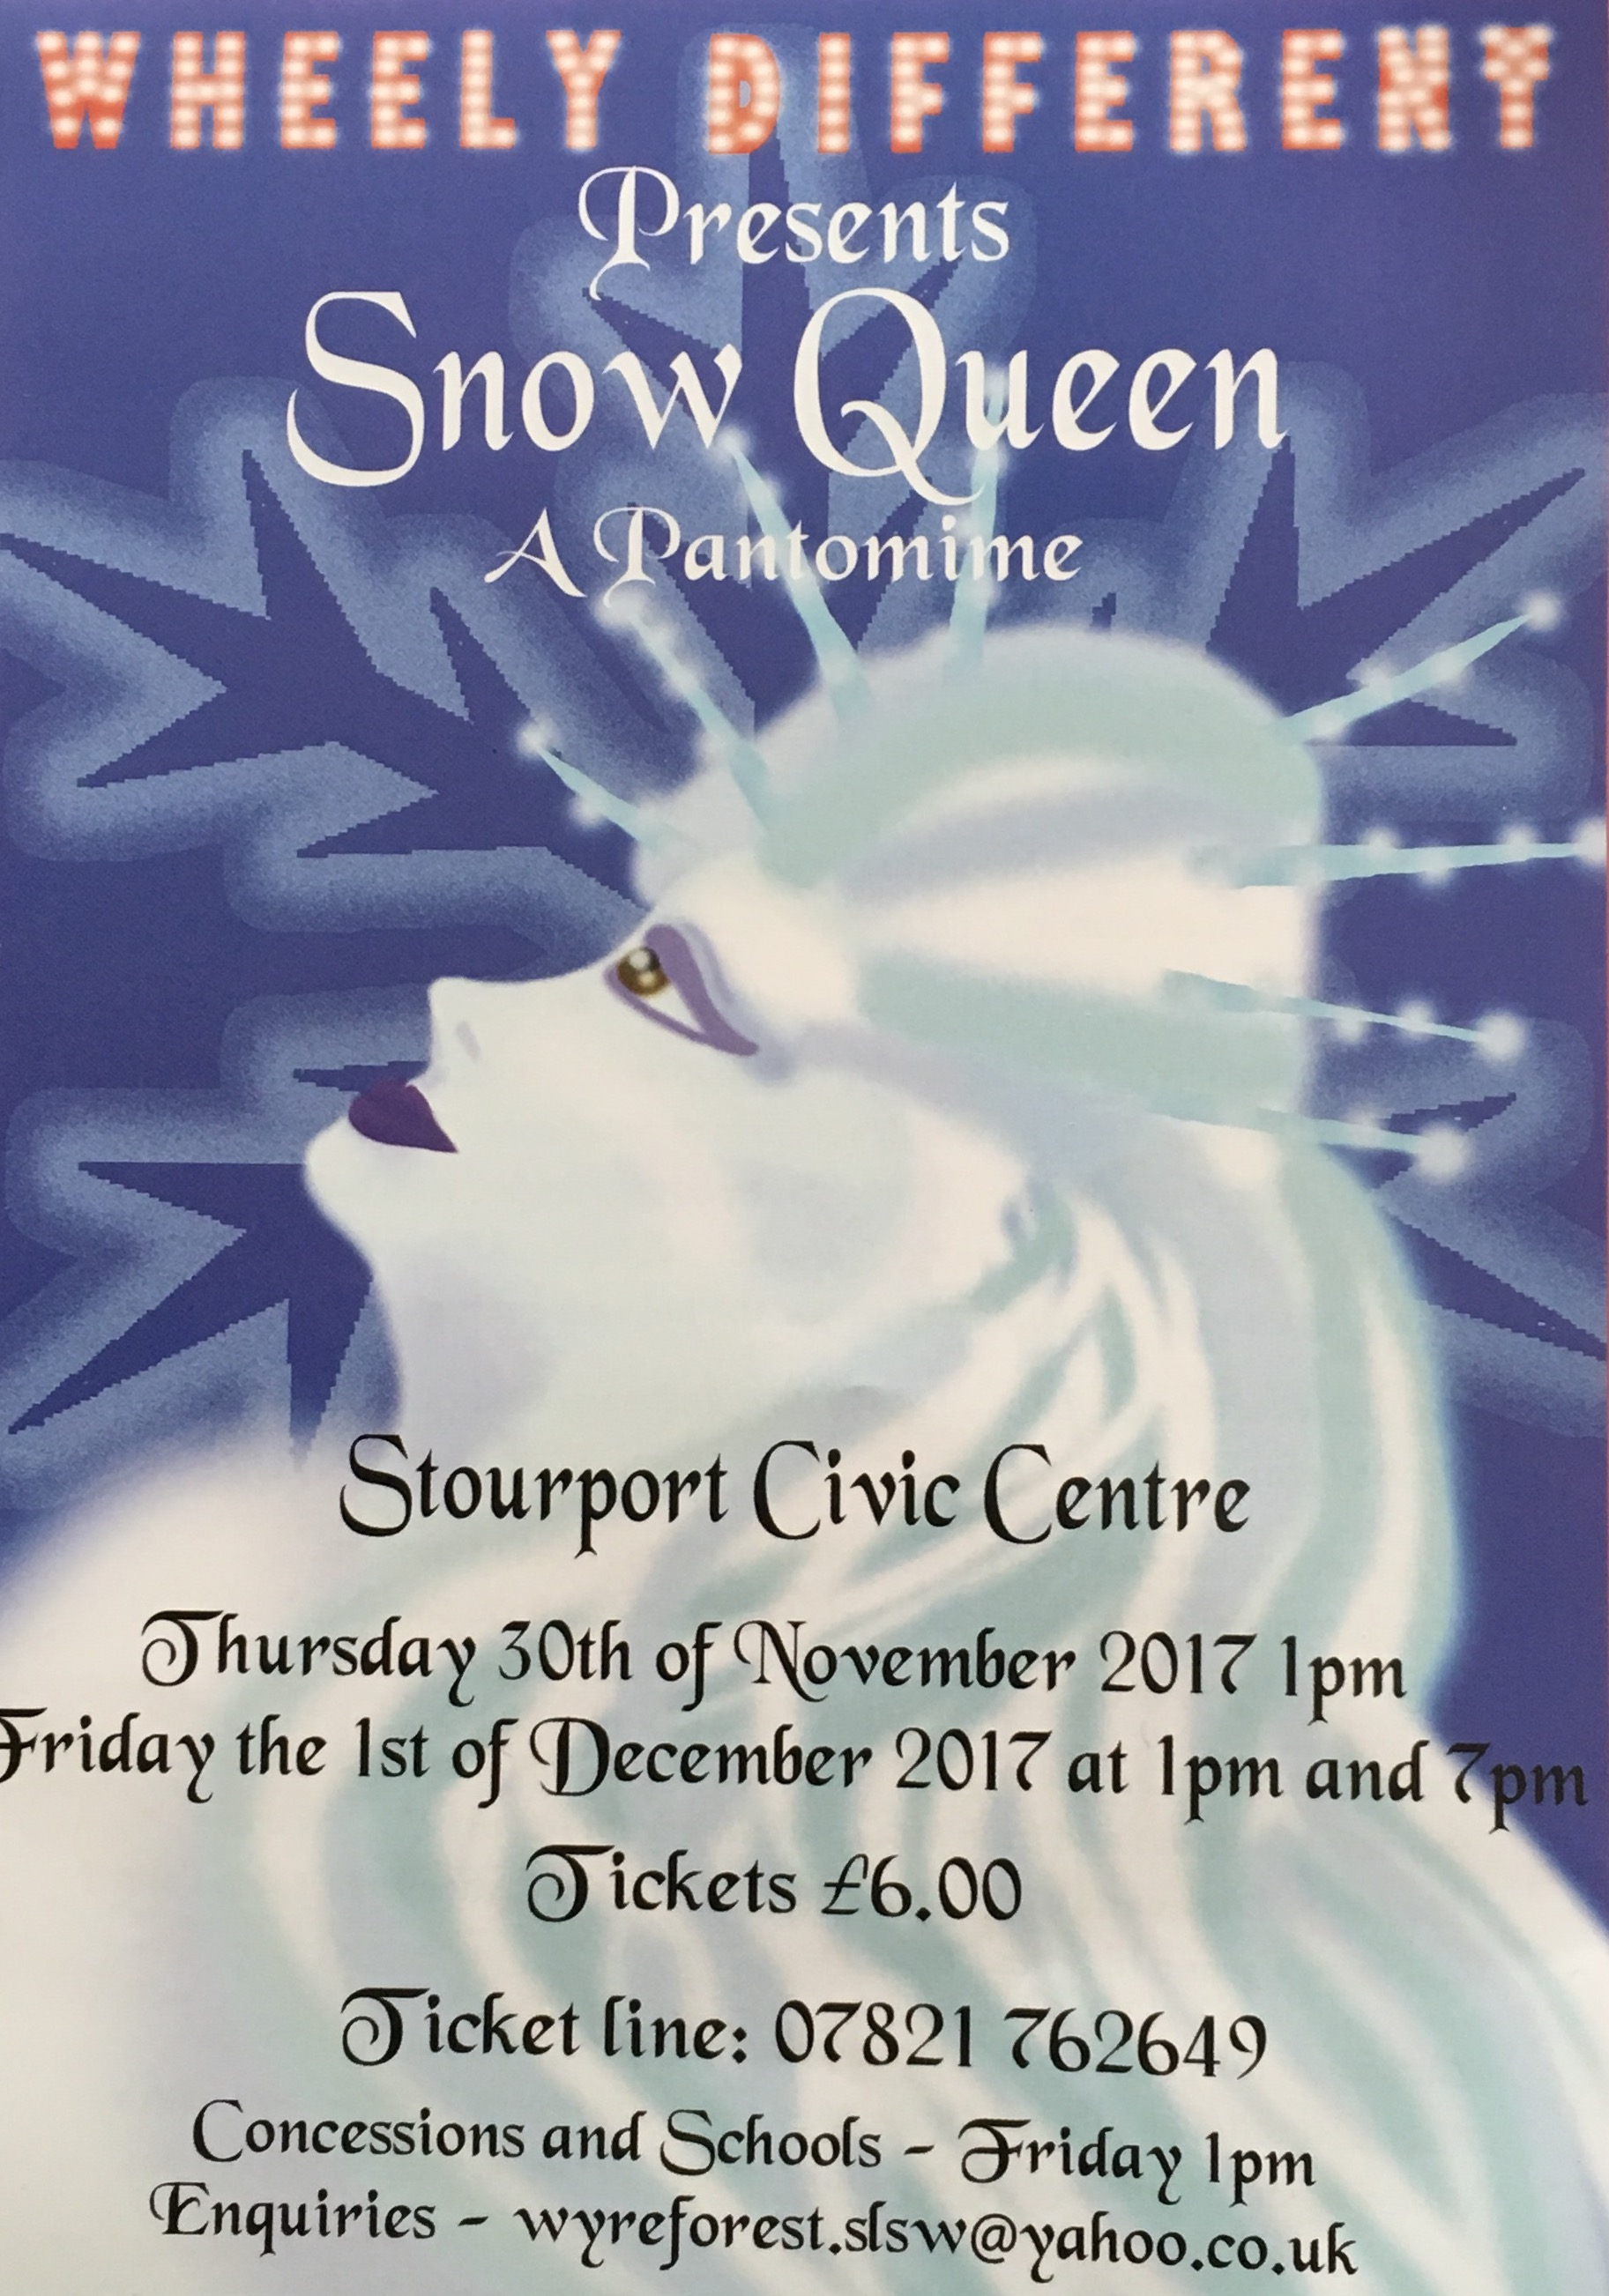 Snow Queen A Pantomime